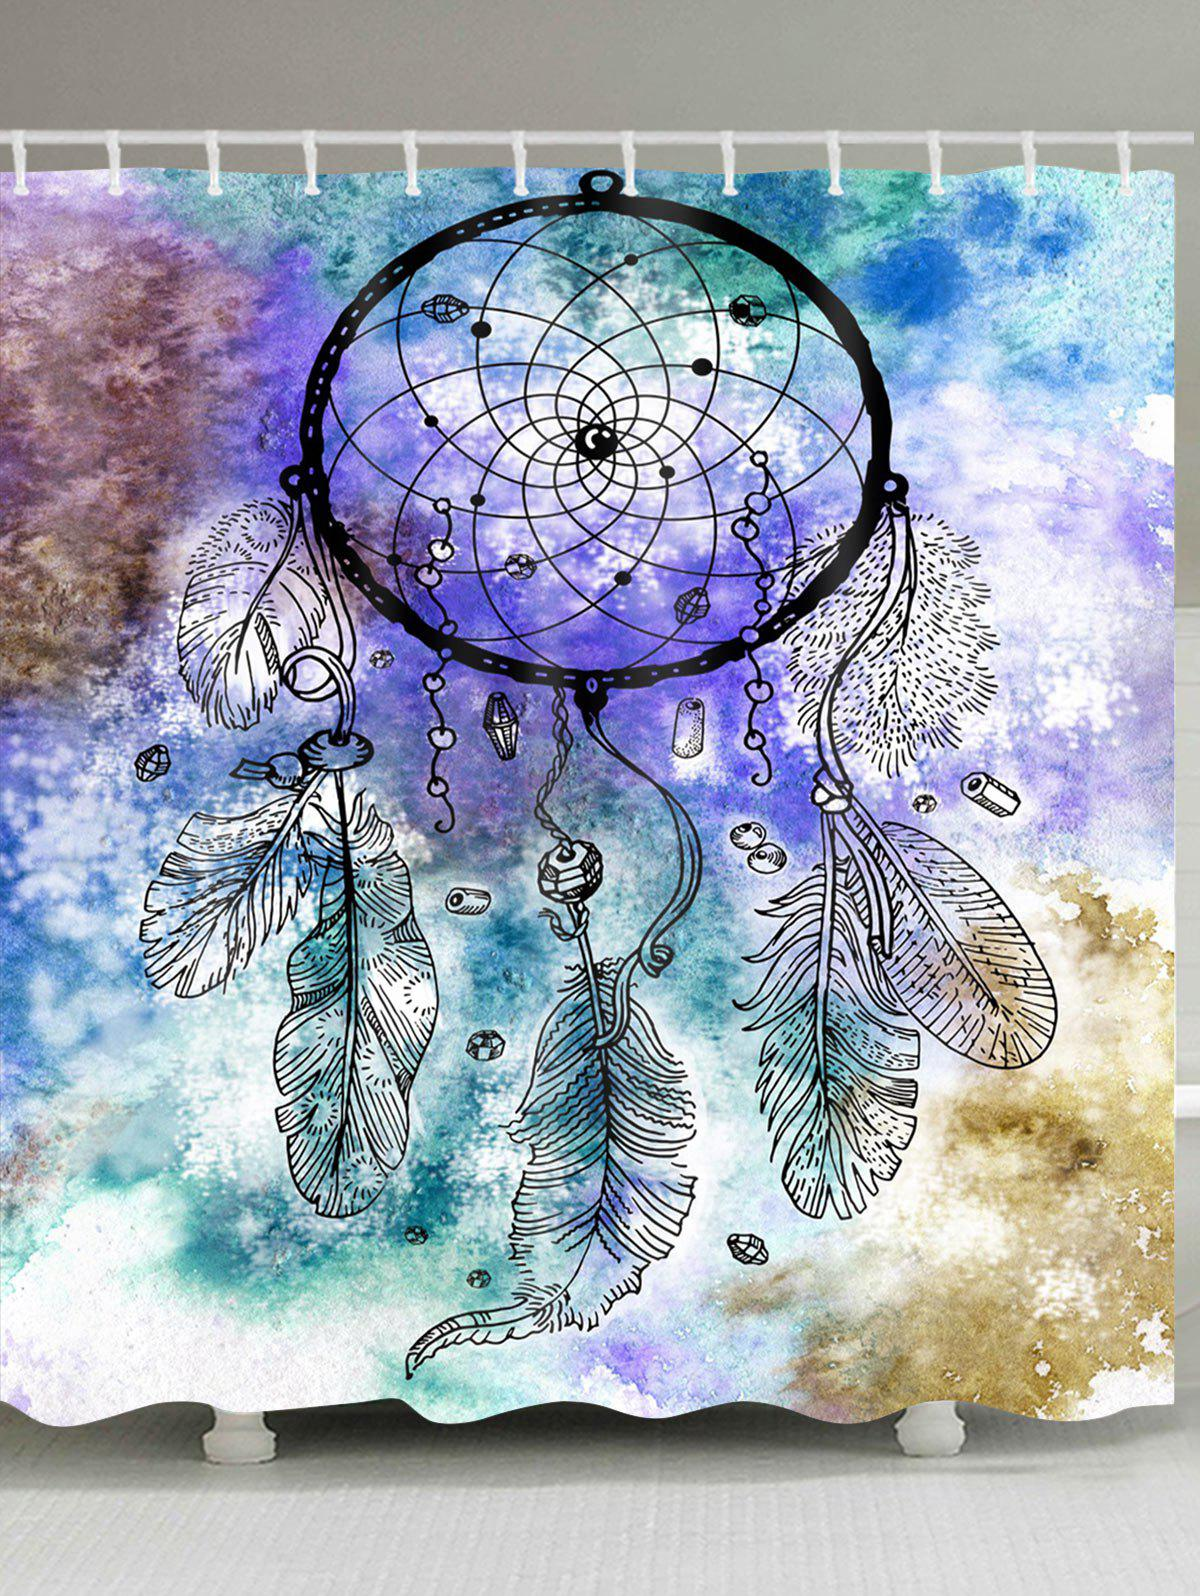 Dreamcatcher Watercolor Painting Print Waterproof Shower Curtain - COLORMIX W71 INCH * L71 INCH